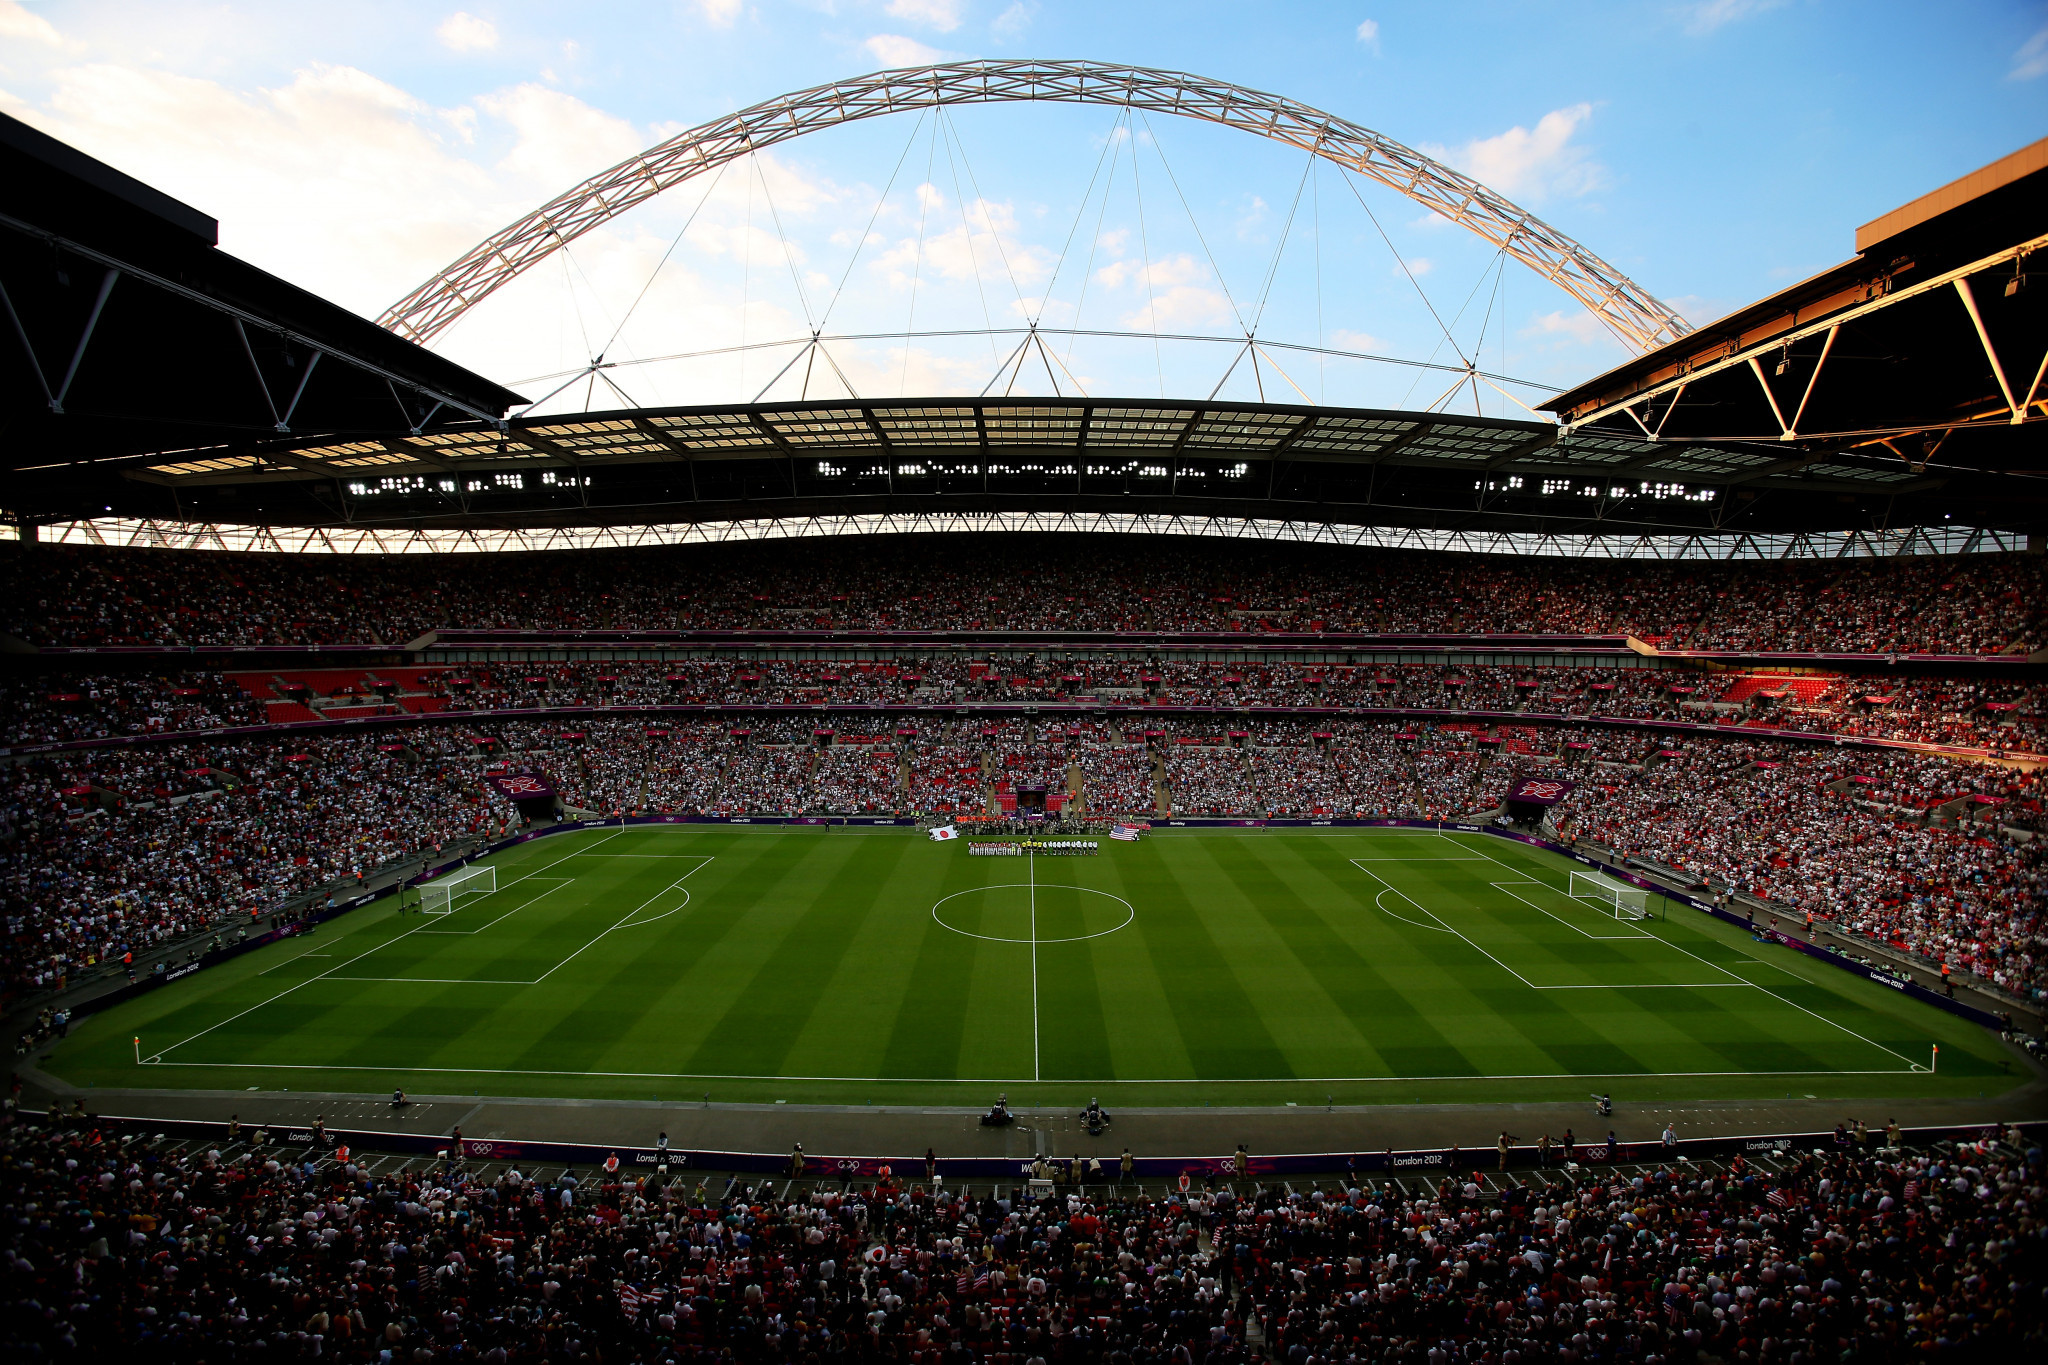 Fans at Wembley to require proof of vaccination or negative test for Euro 2020